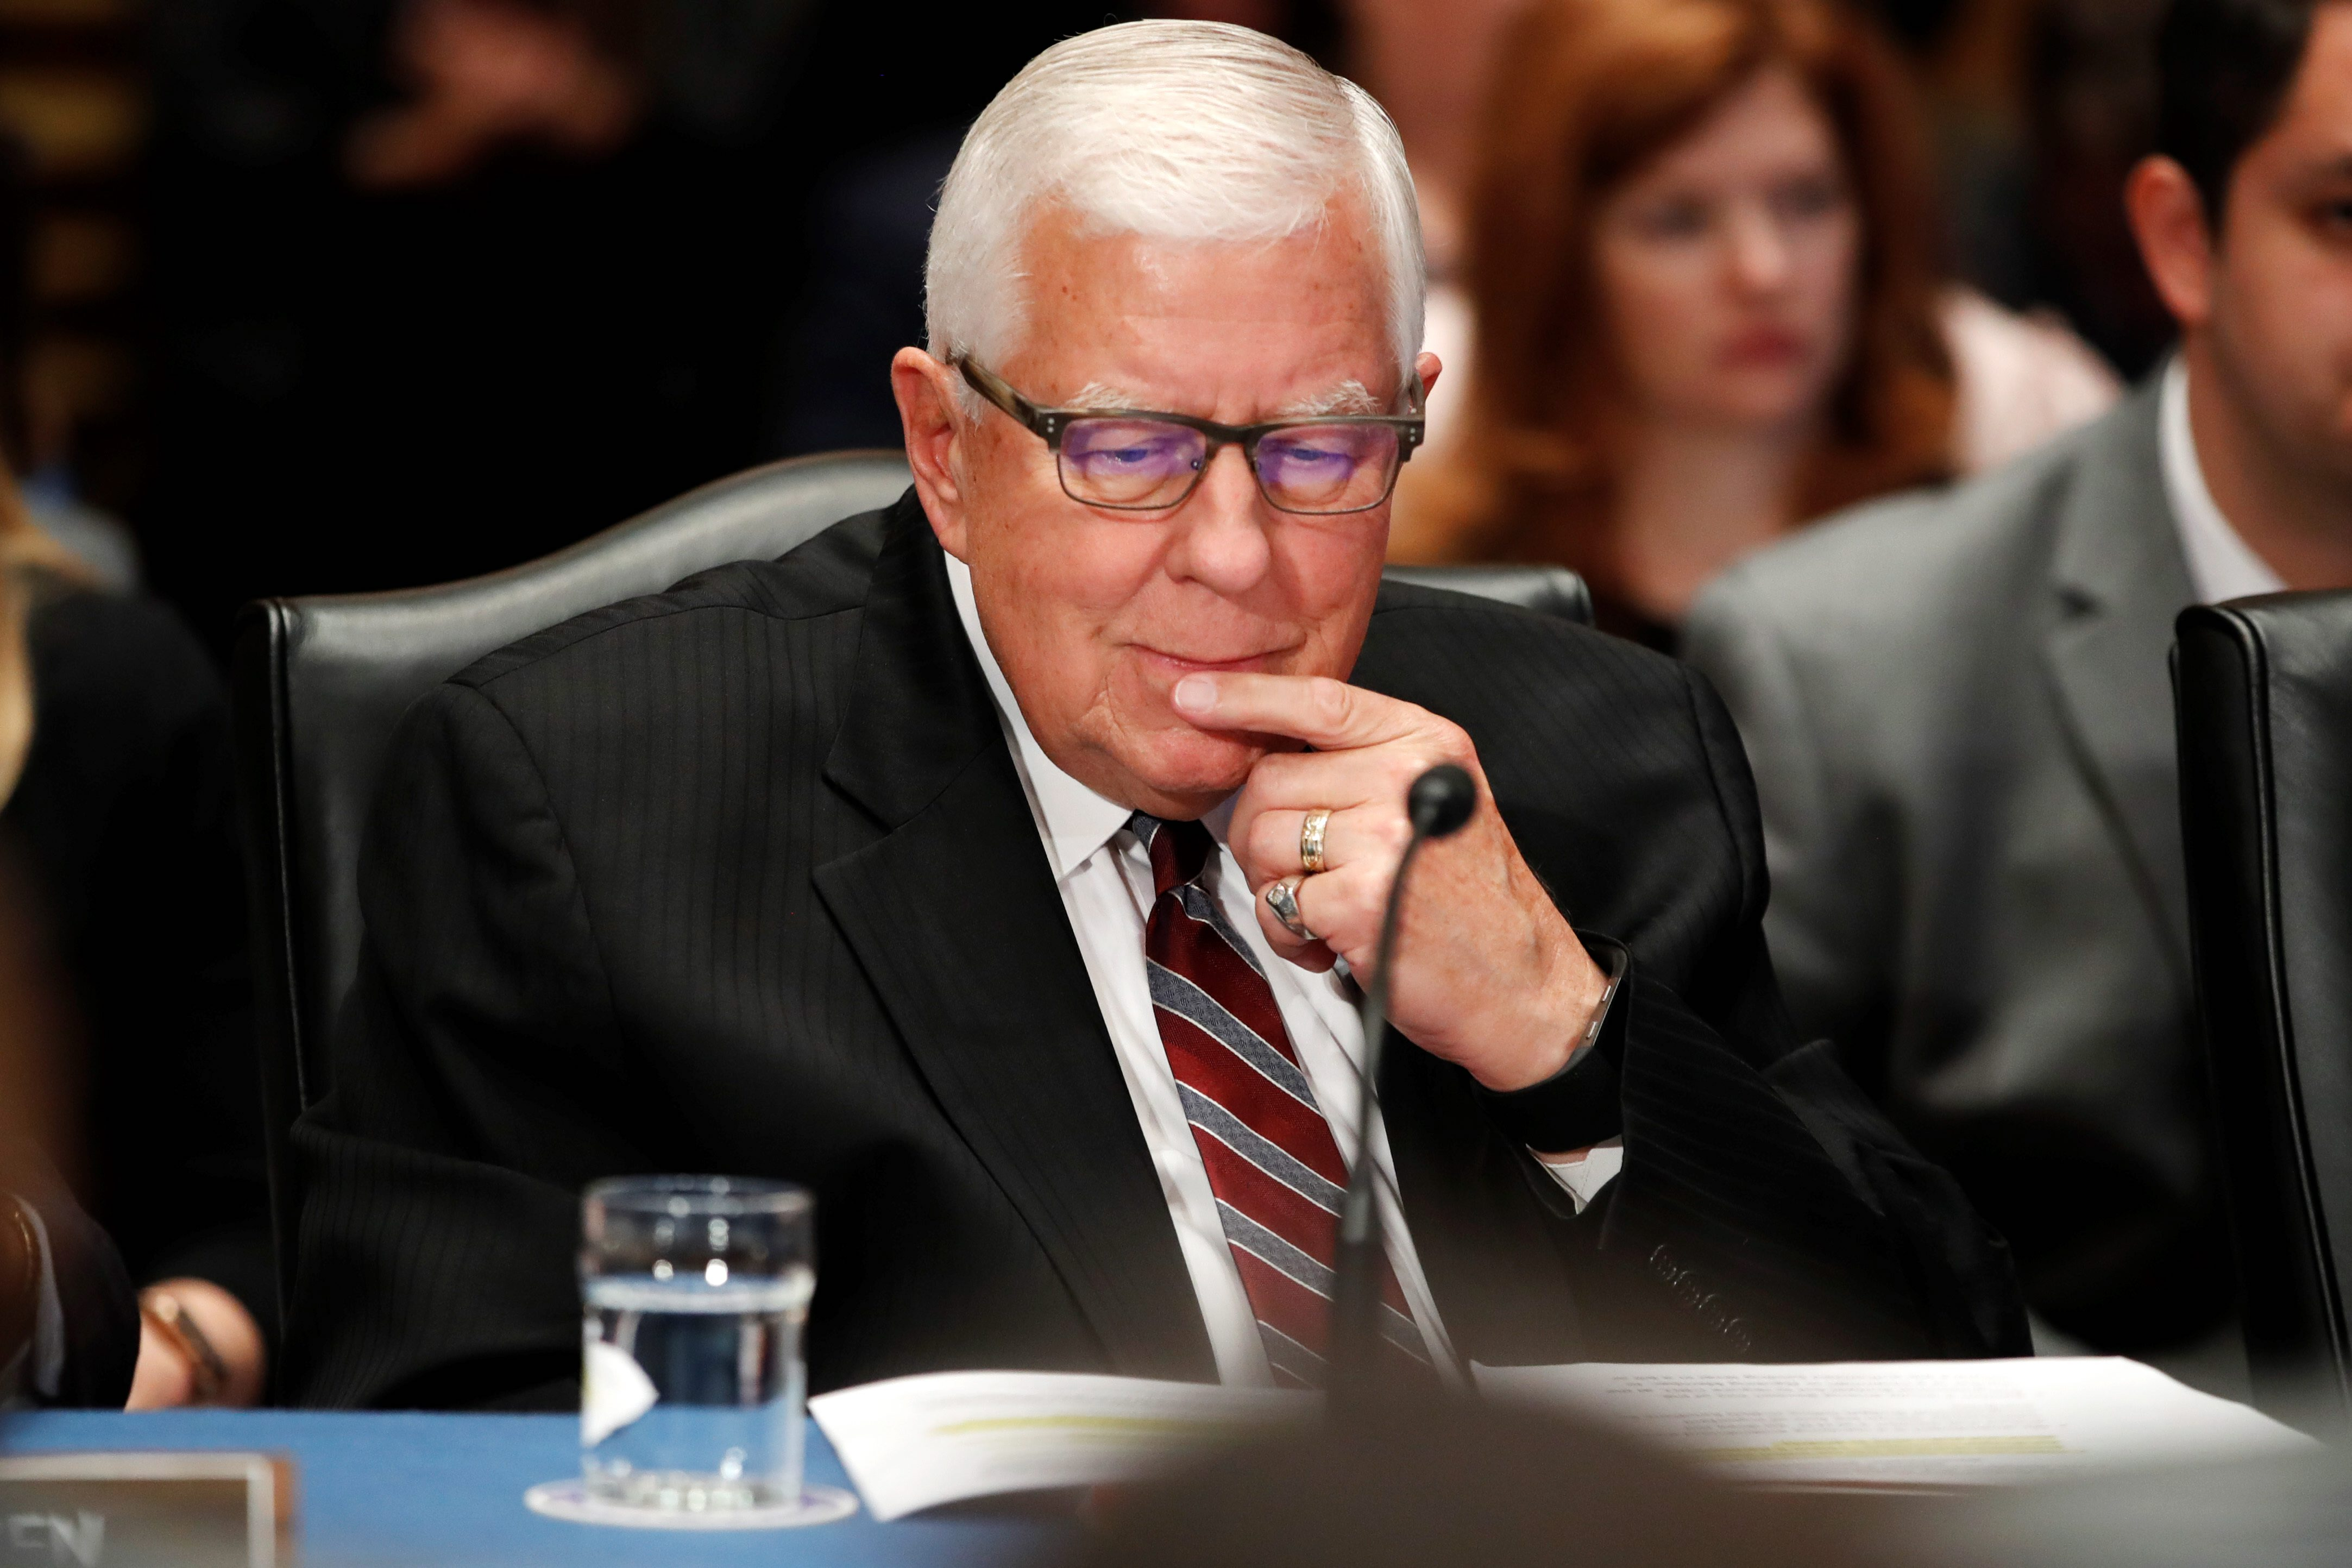 Enzi's 2020 budget plan attempts to tame federal deficits